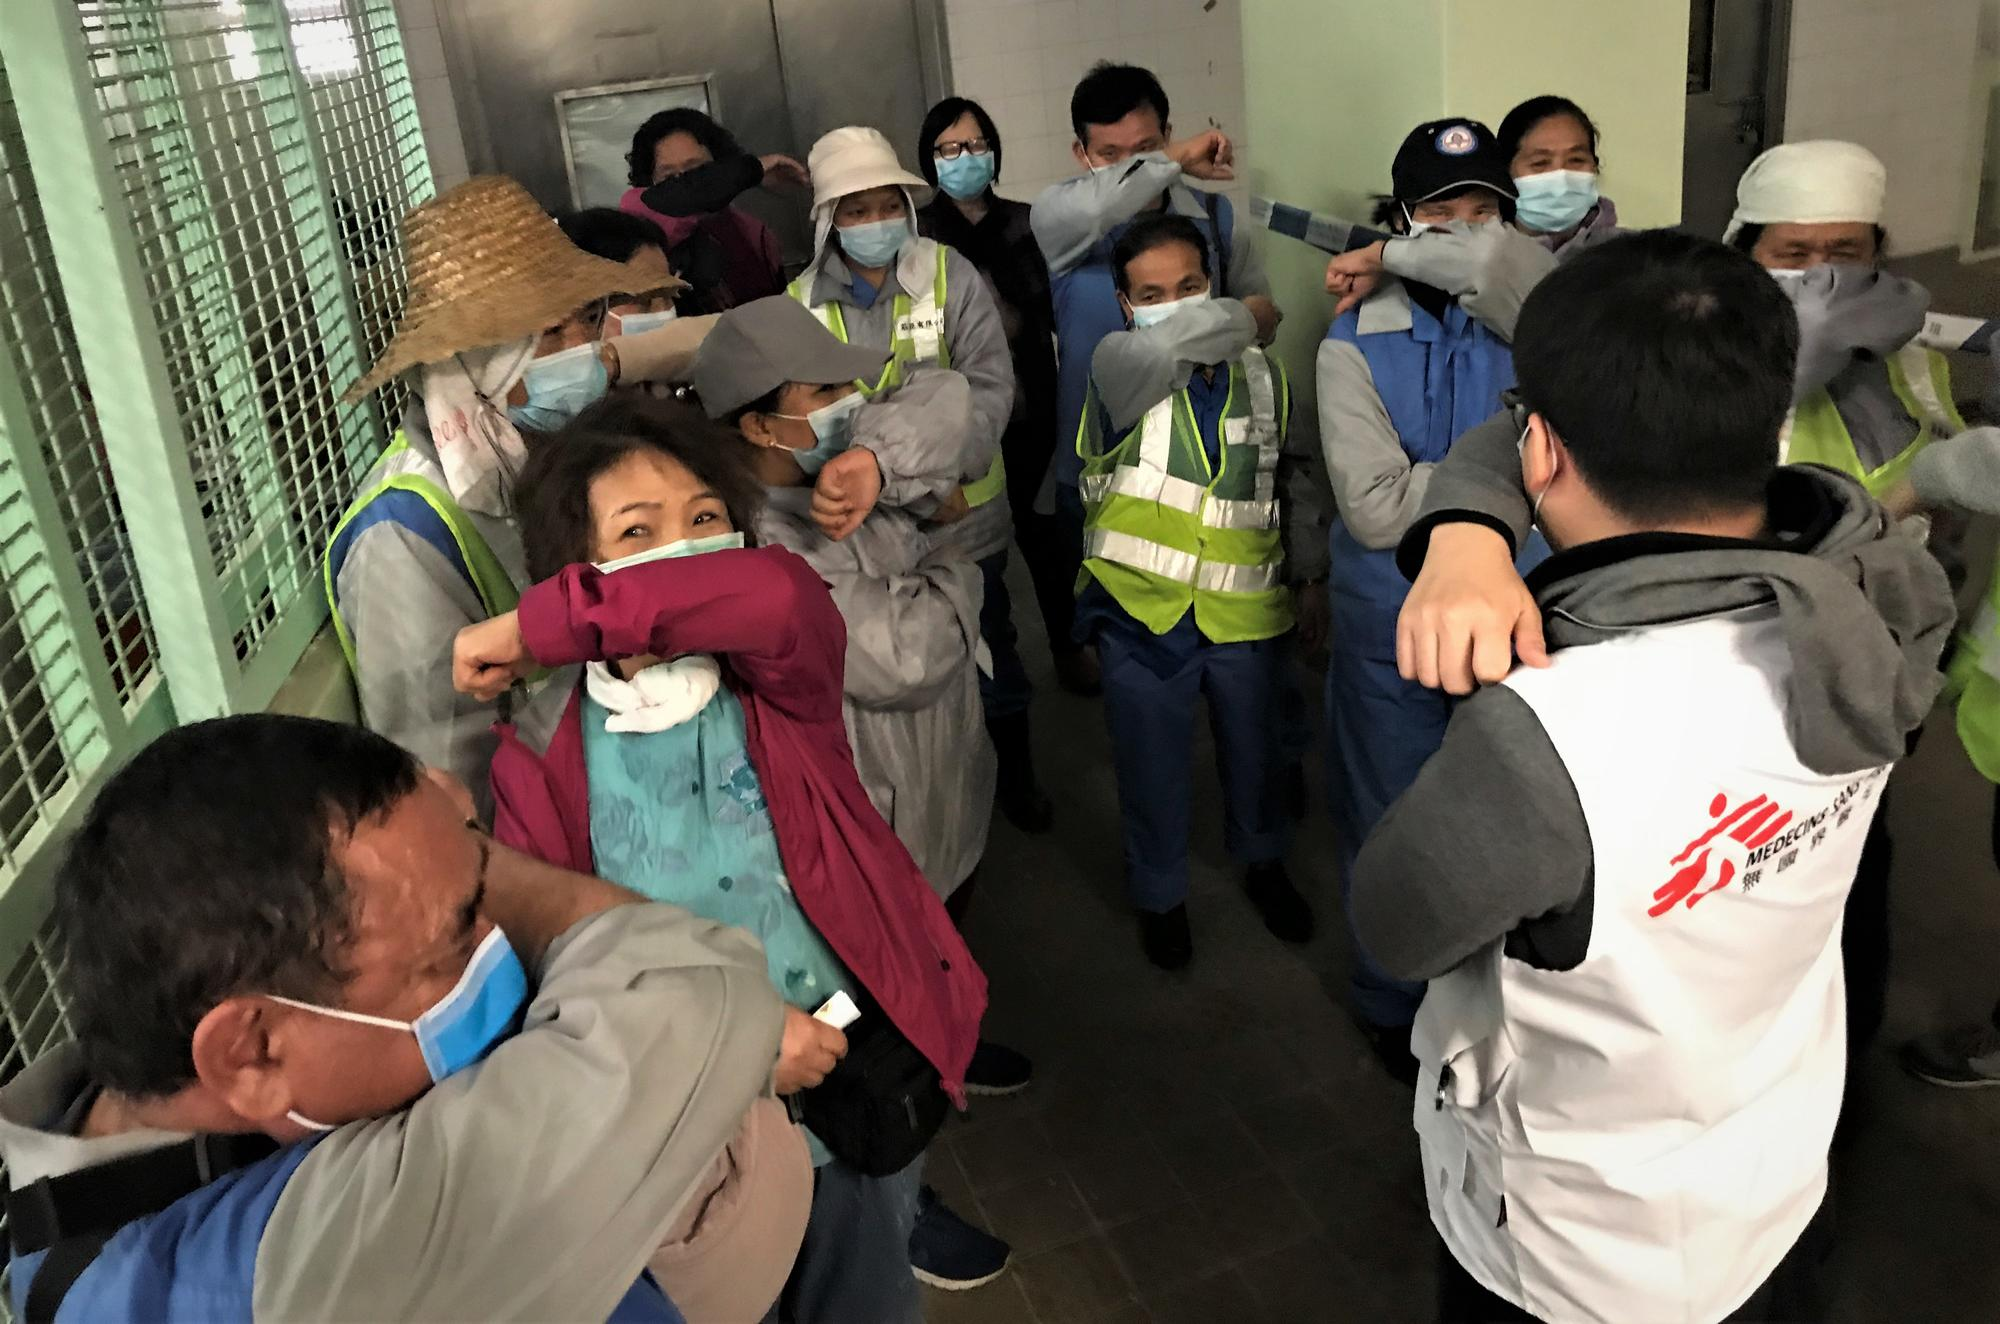 MSF has started an intervention for the outbreak of COVID-19